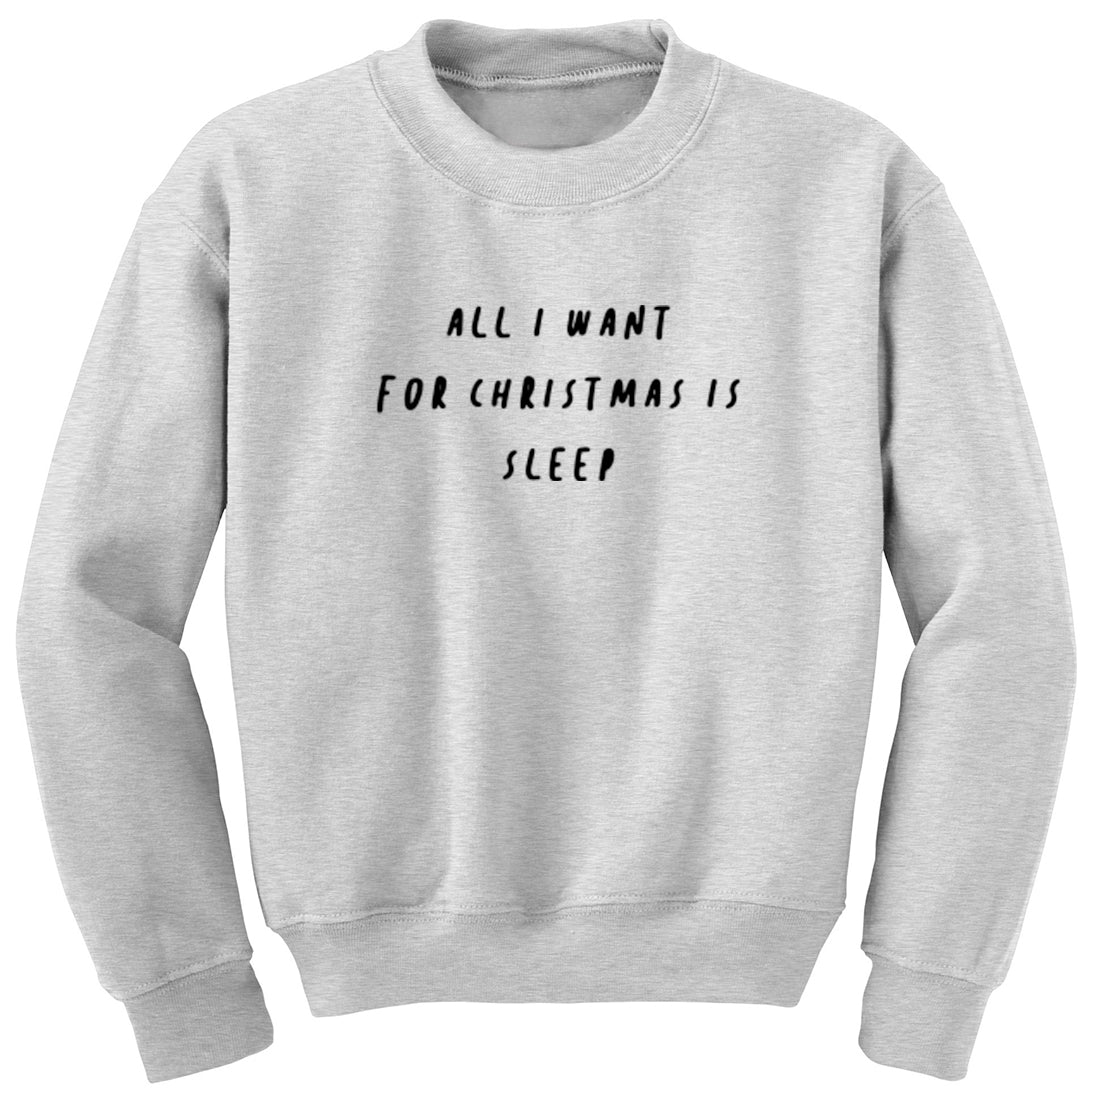 All I Want For Christmas Is Sleep Unisex Jumper K2477 - Illustrated Identity Ltd.